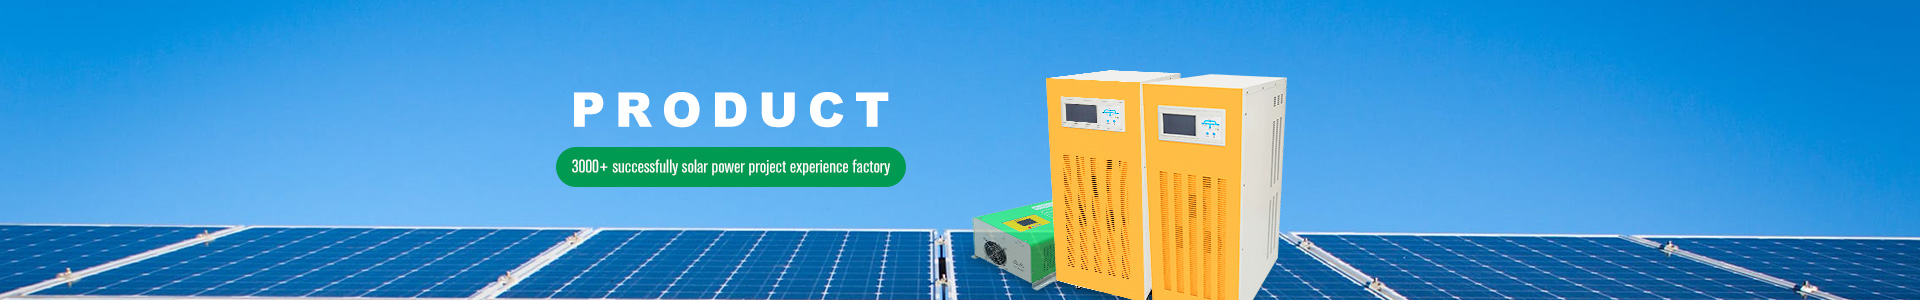 Solar Power Accessories